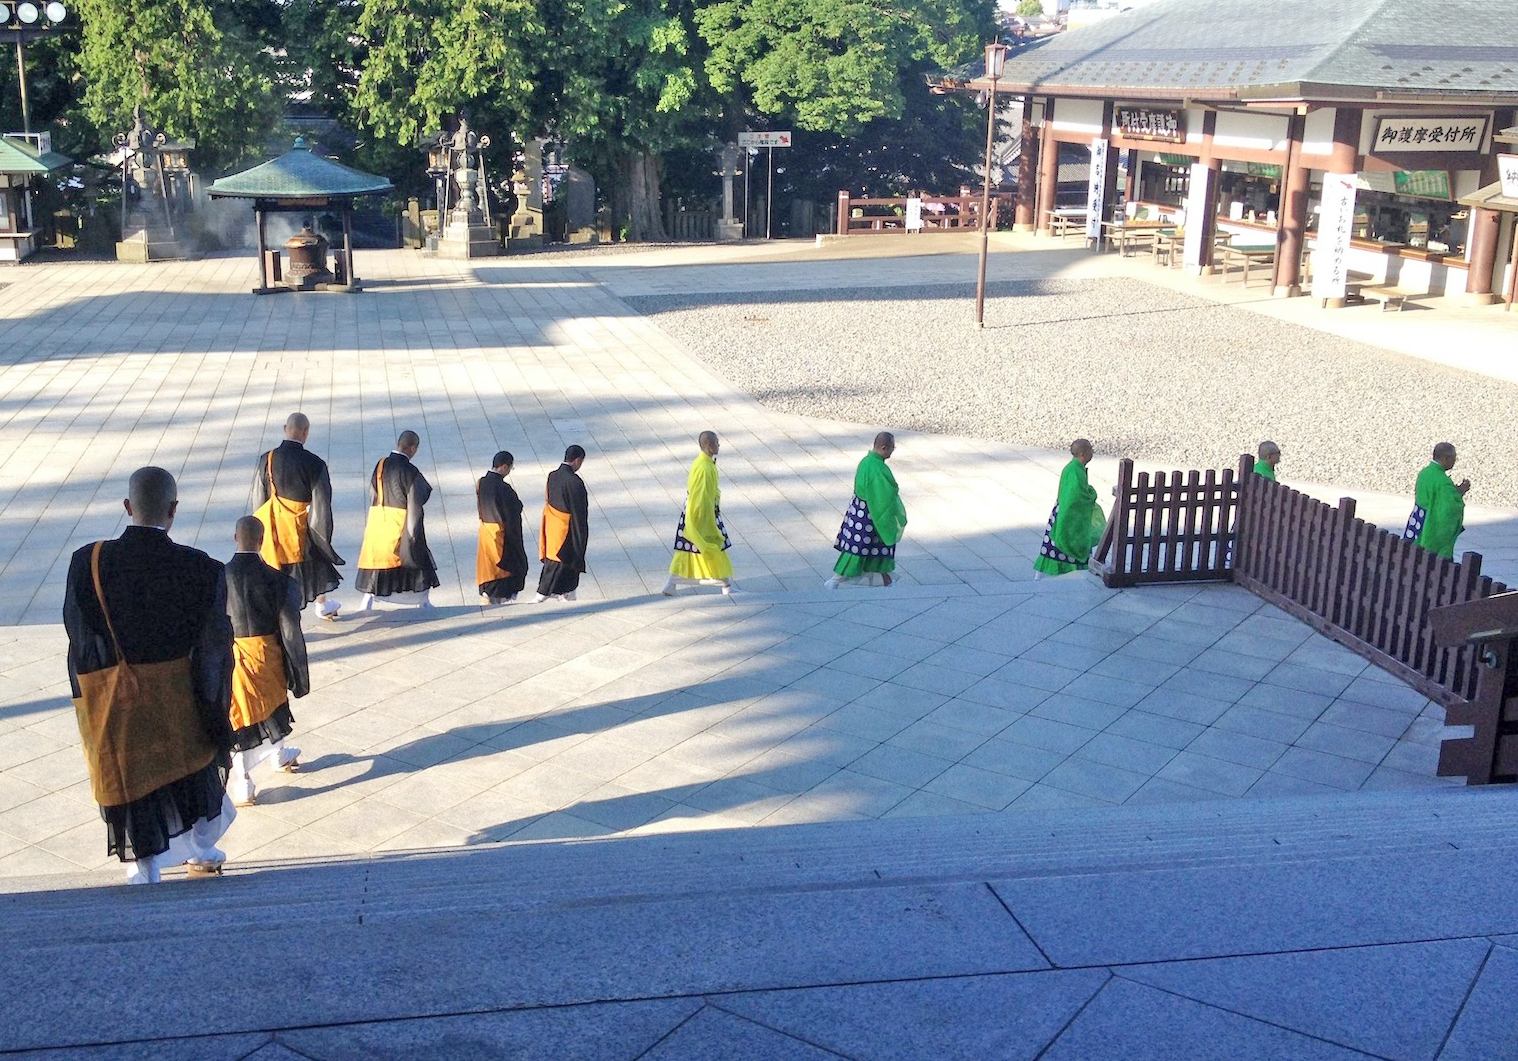 Monks leaving the temple after their early morning chant and prayer.